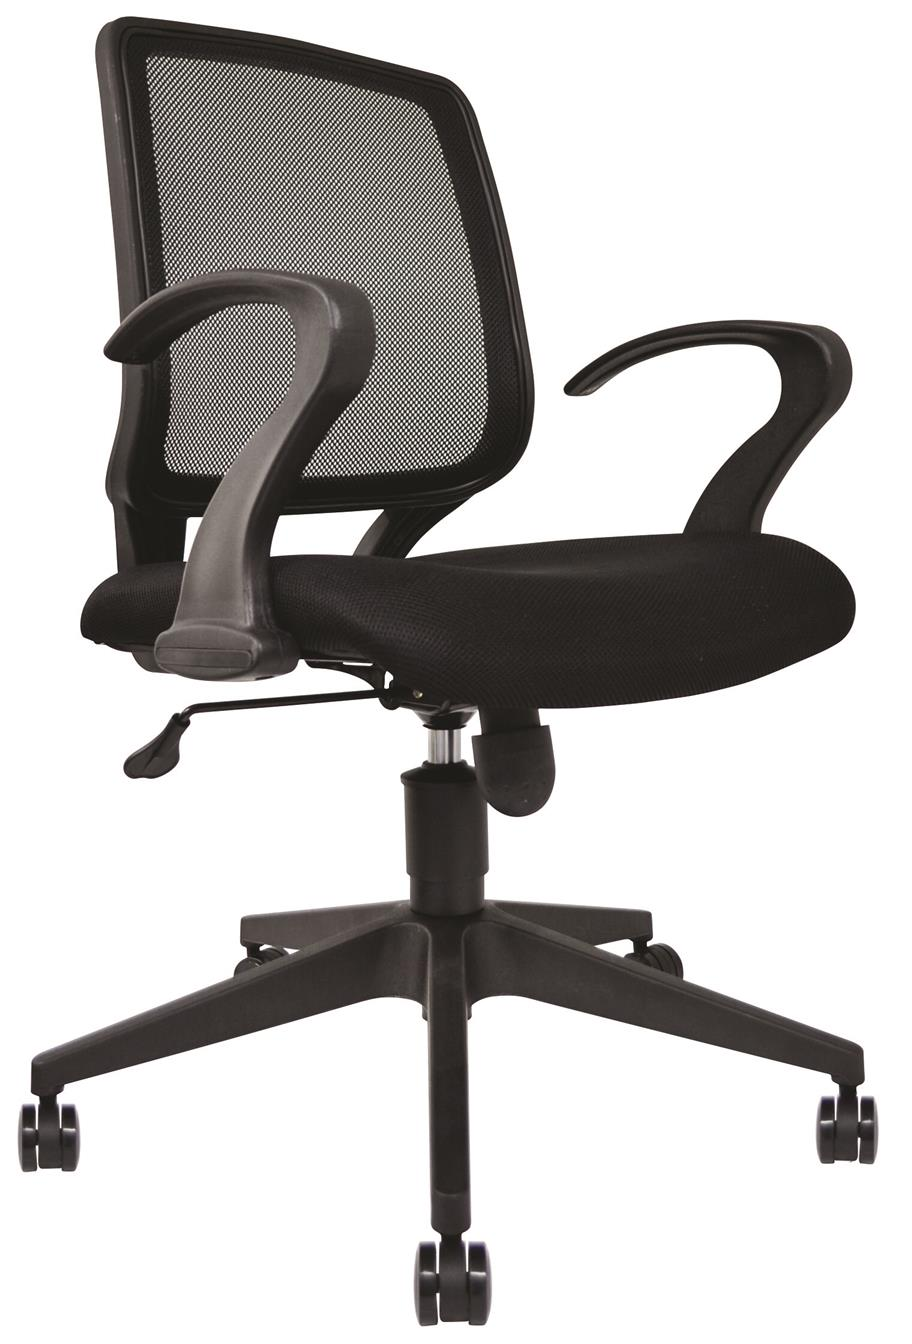 OFFICE MESH CHAIR | OFFICE NETTING CHAIR MODEL : NT-11